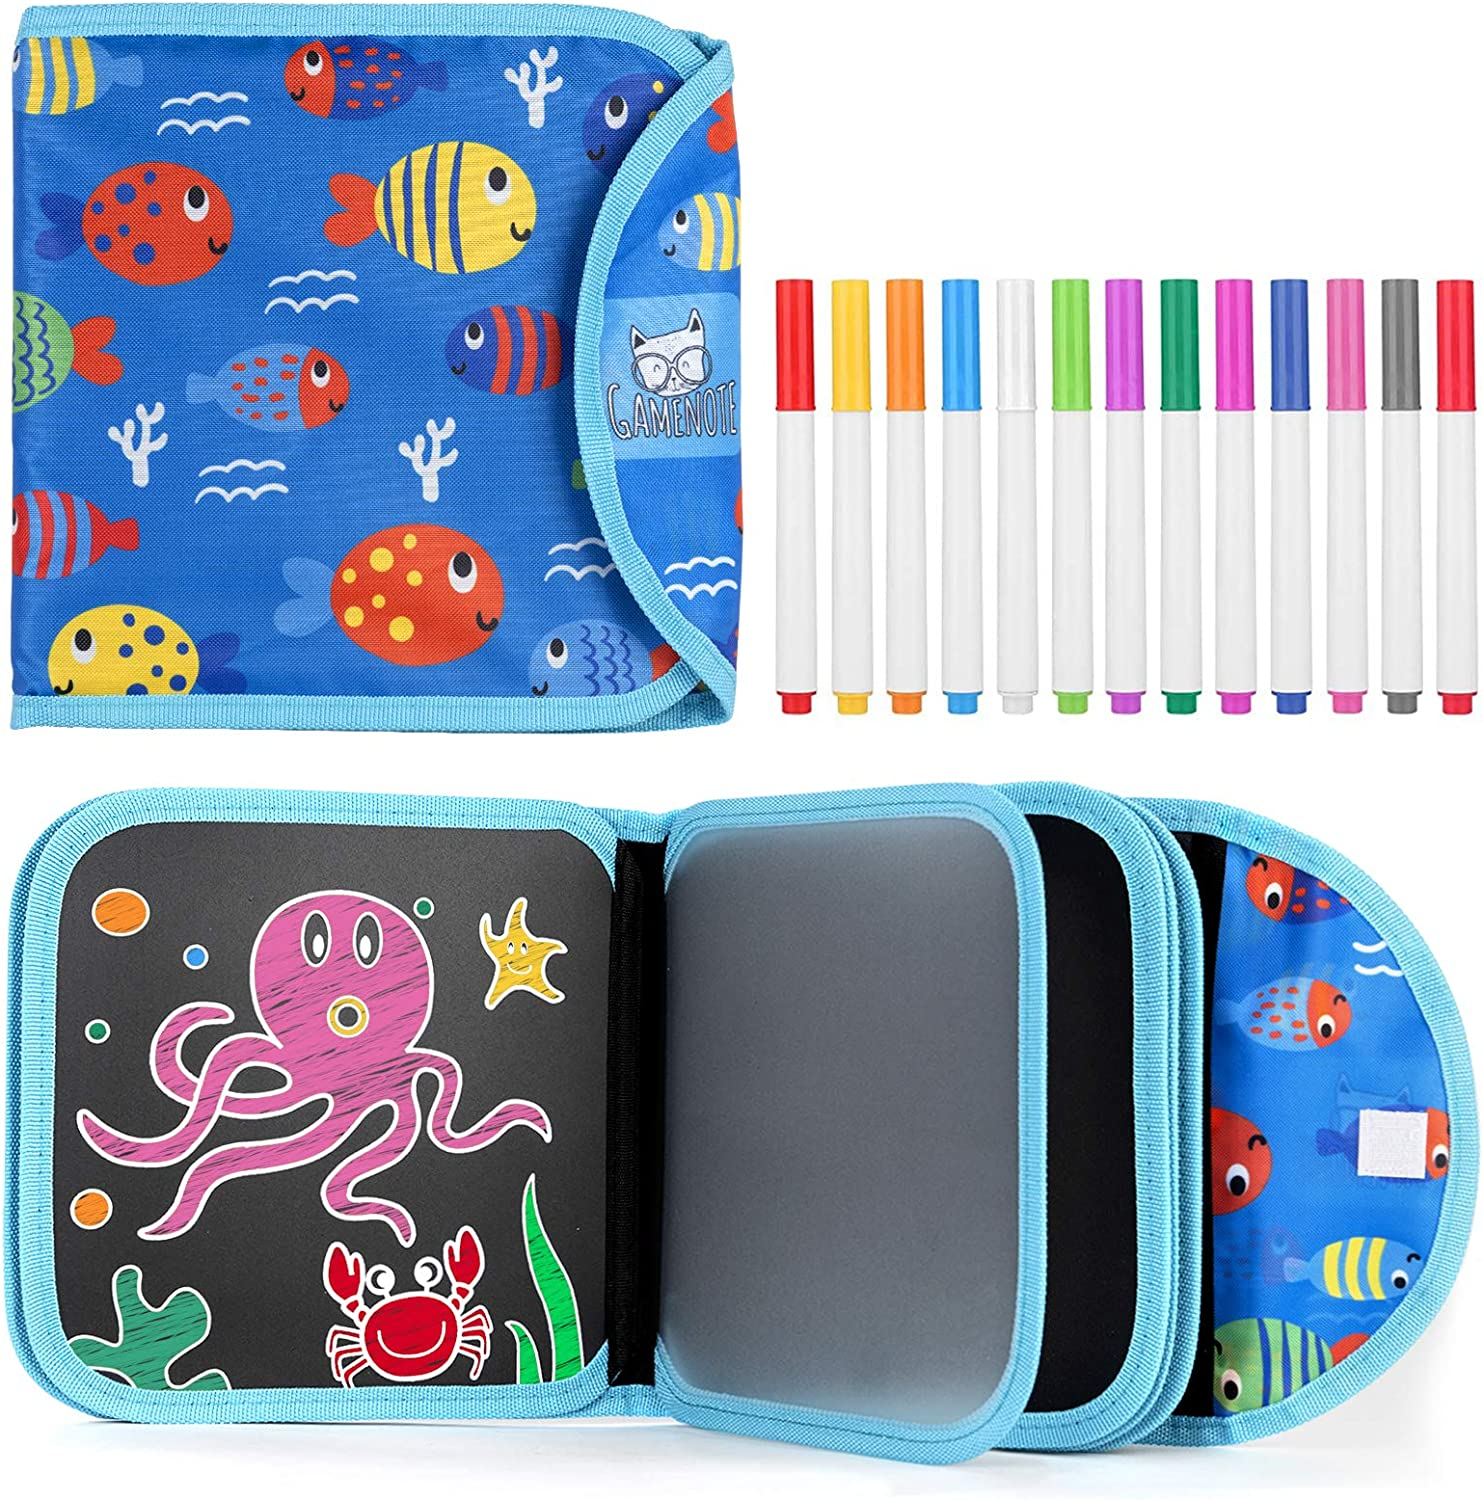 14 Pages for Funny Drawing with 12 Watercolor Pens Reusable Drawing Pads Kids Erasable Doodle Book Set Green Gifts for Boys Girls Road Trip Preschool Travel Art Toy Scribbler Board for Travel